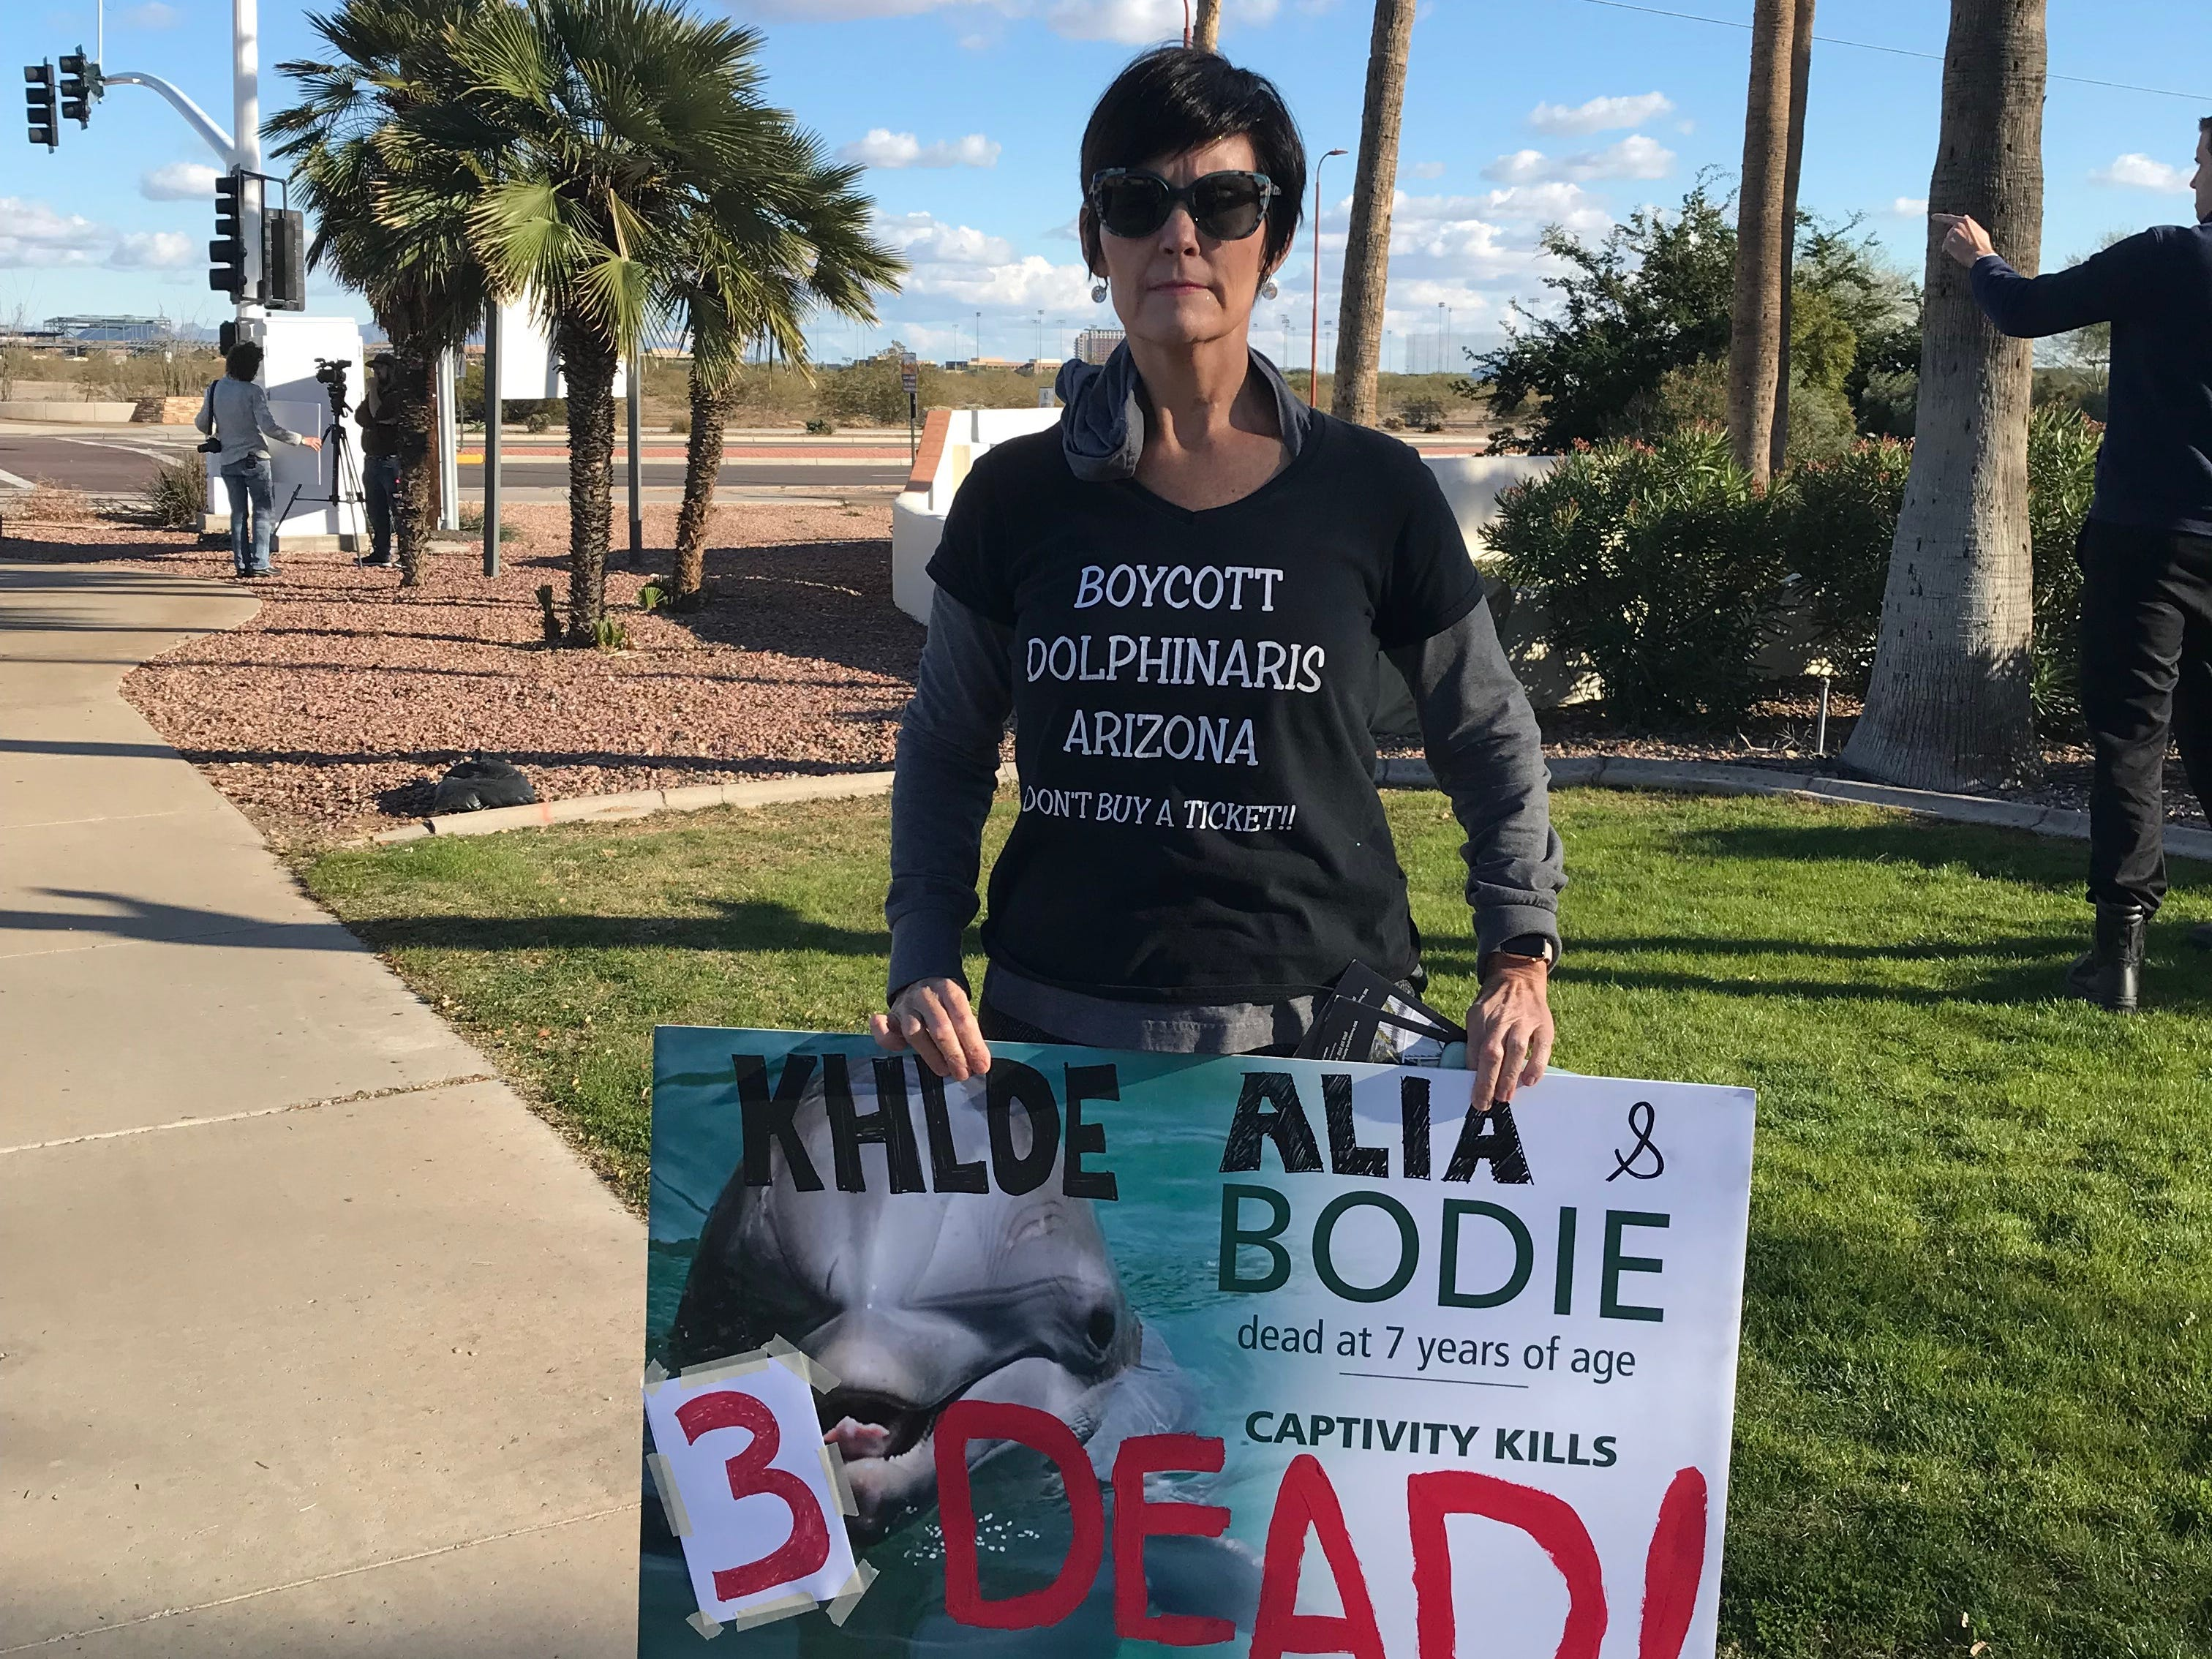 Jeanette McCourt holds a sign with the names of three dolphins that have died at Dolphinaris Arizona since it opened.